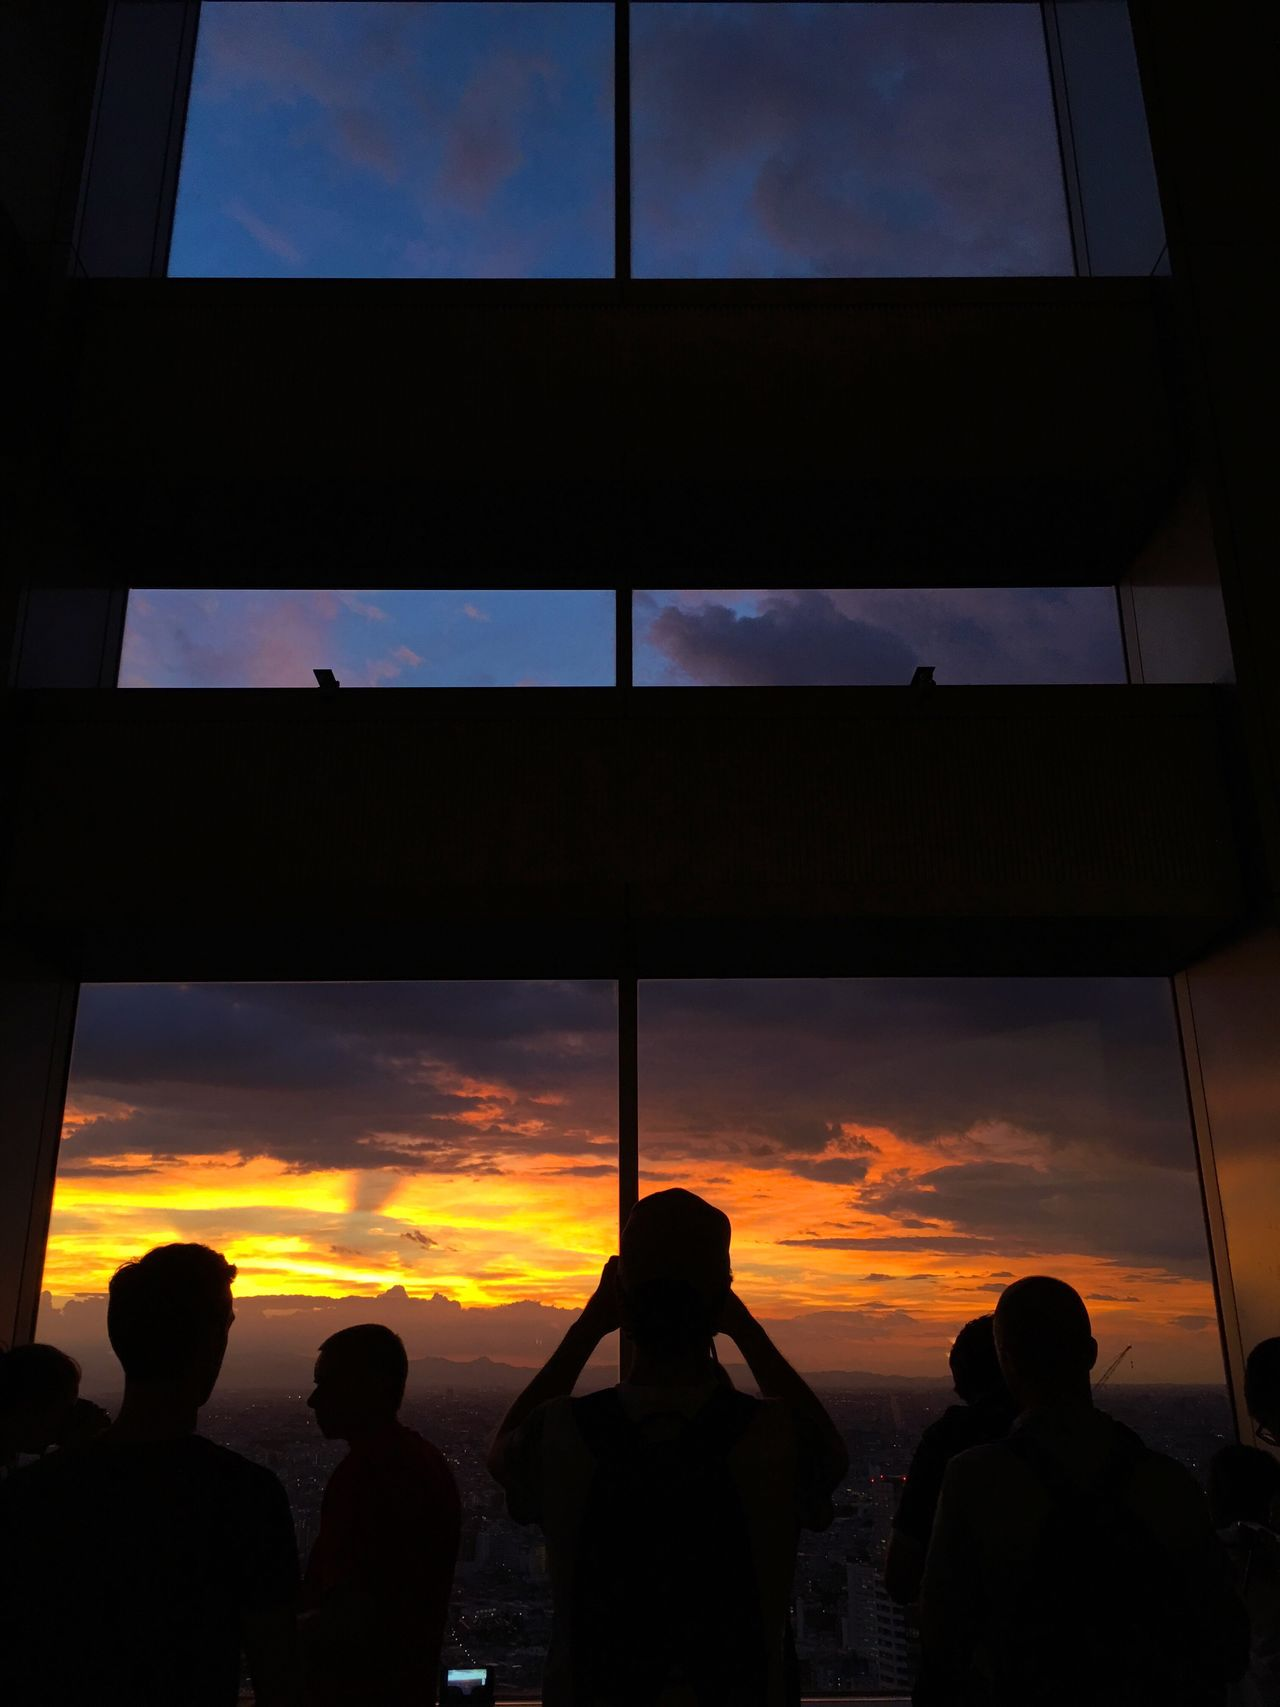 夕日 Sunset と 窓 Window と 人々 People 。 Silhouette Dramatic Sky Sunset_collection Cloudscape Urban Skyline (null) Urban Landscape Shinjuku Tokyo Sky Cityscape Skyscraper EyeEm Best Shots People And Places From My Point Of View People Watching People Photography Battle Of The Cities